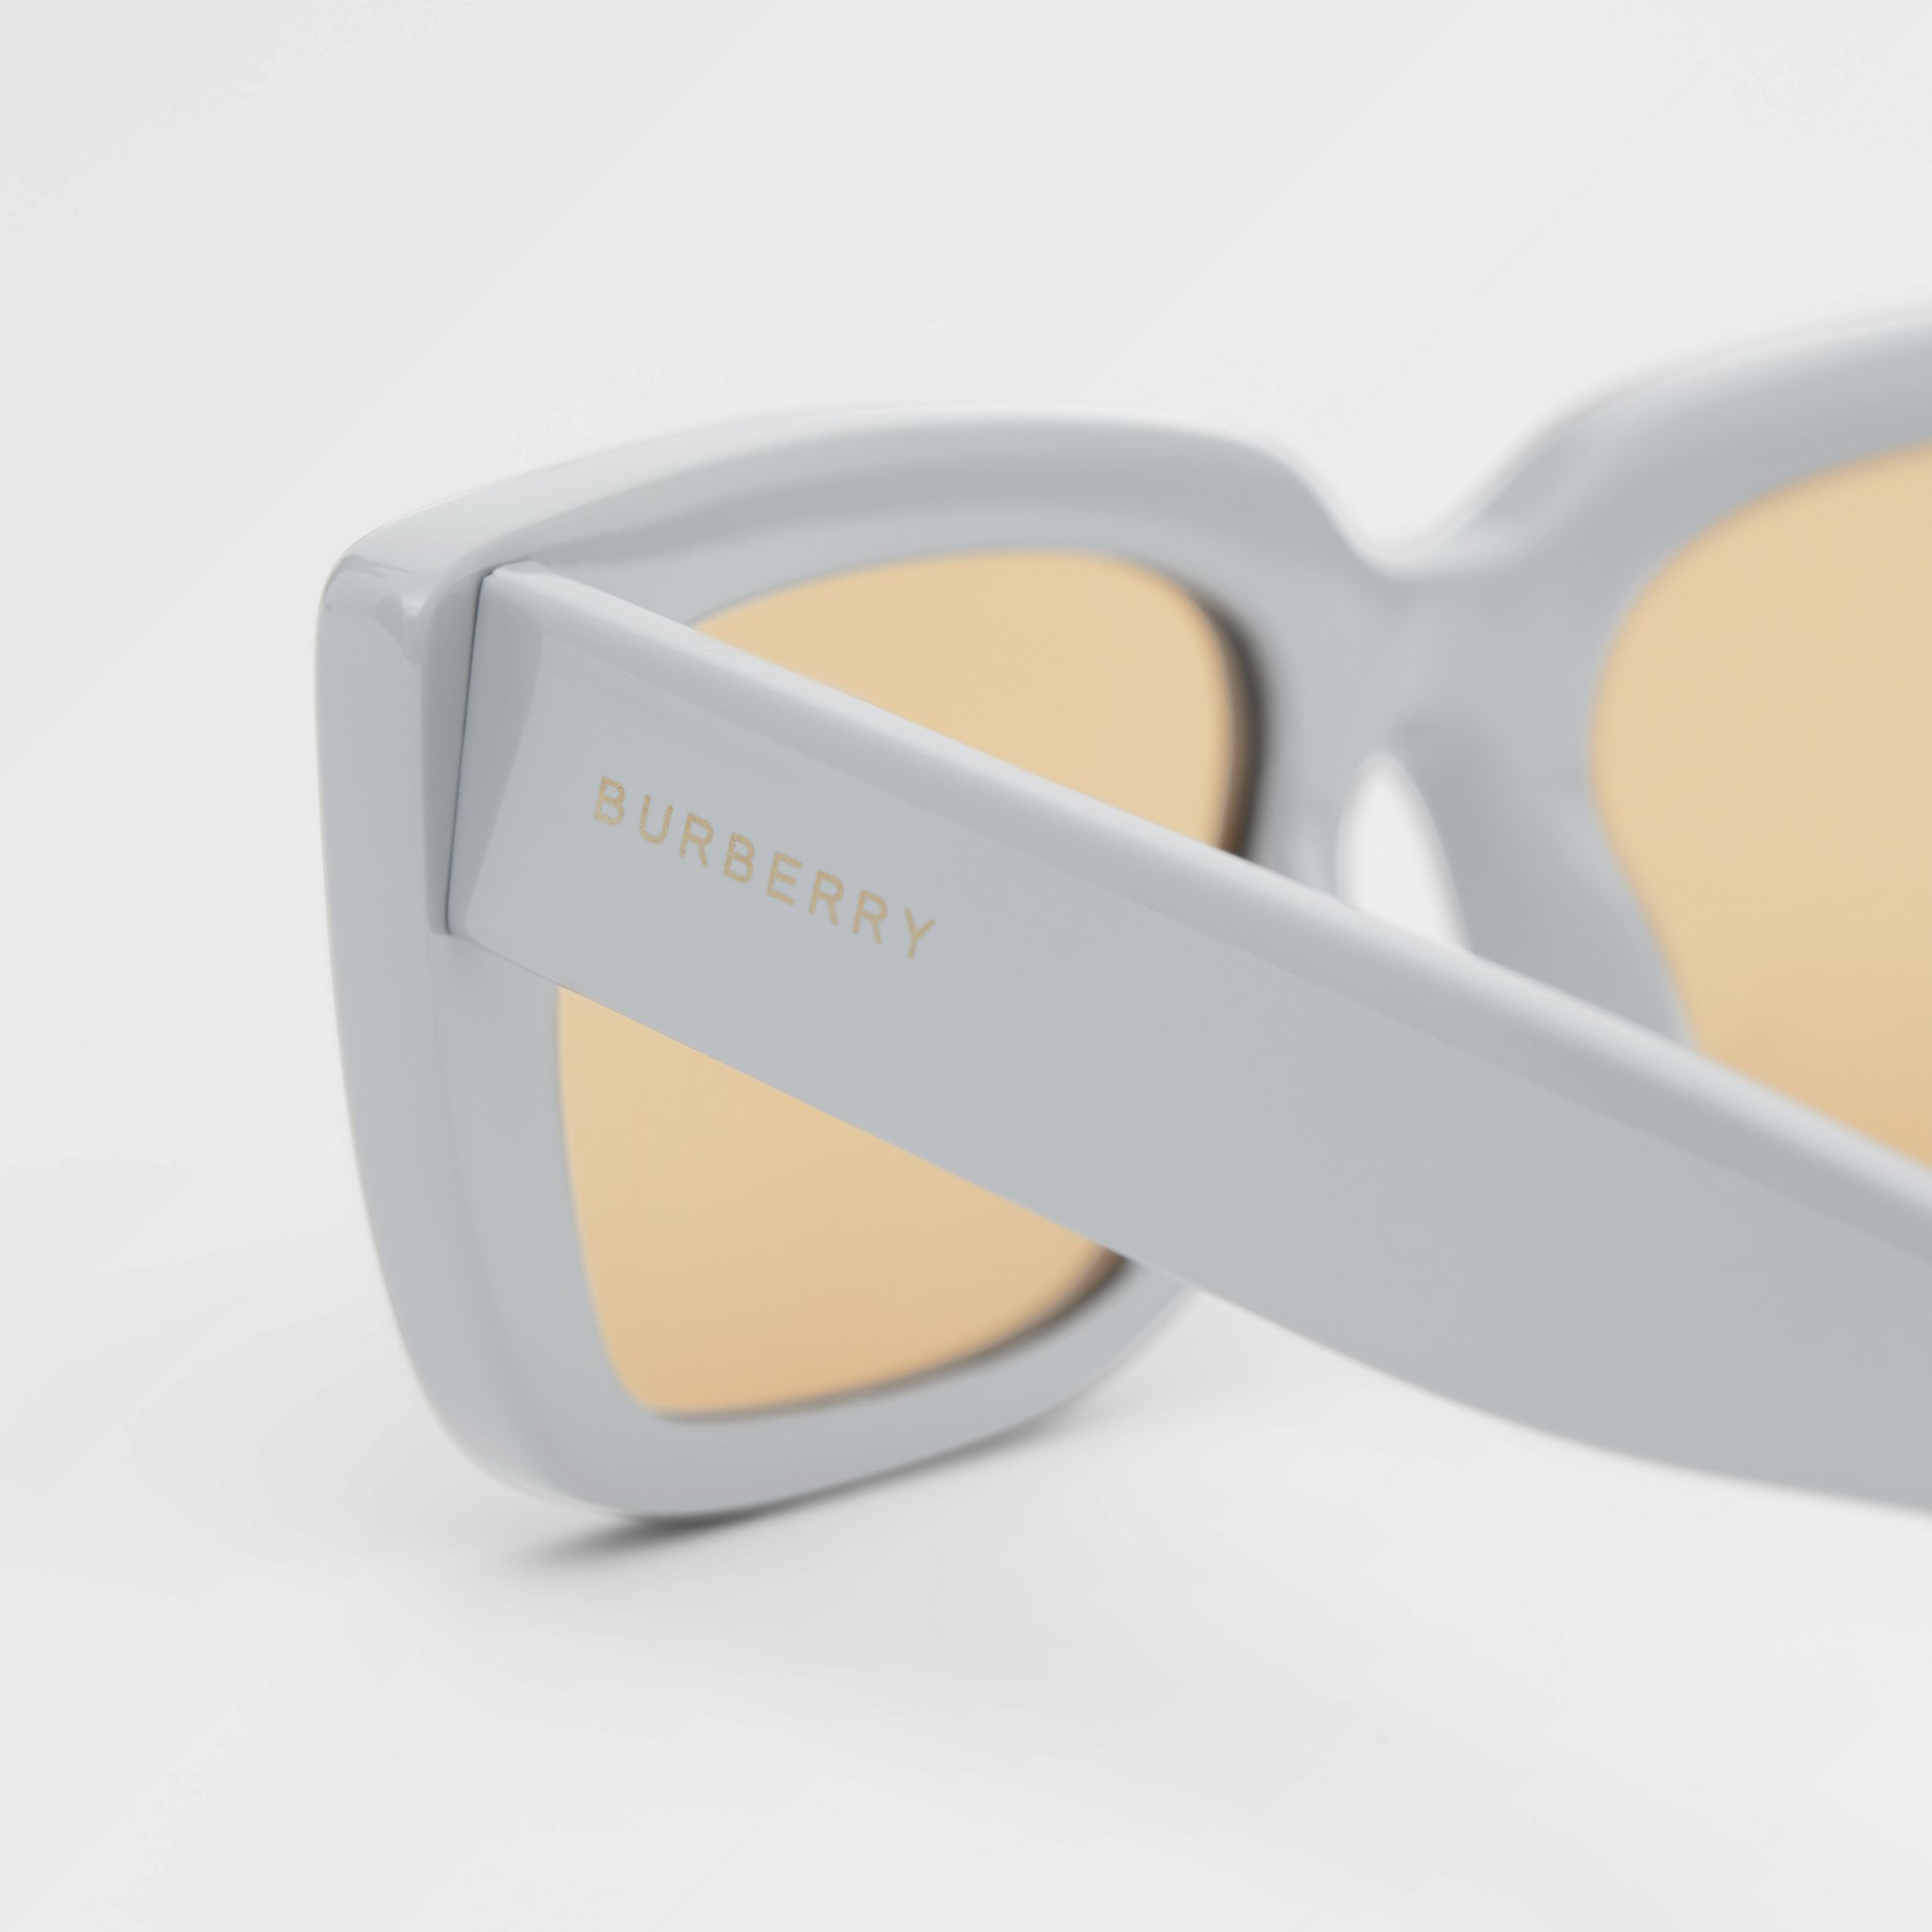 Bio-acetate Rectangular Frame Sunglasses in Grey - Women | Burberry - 2